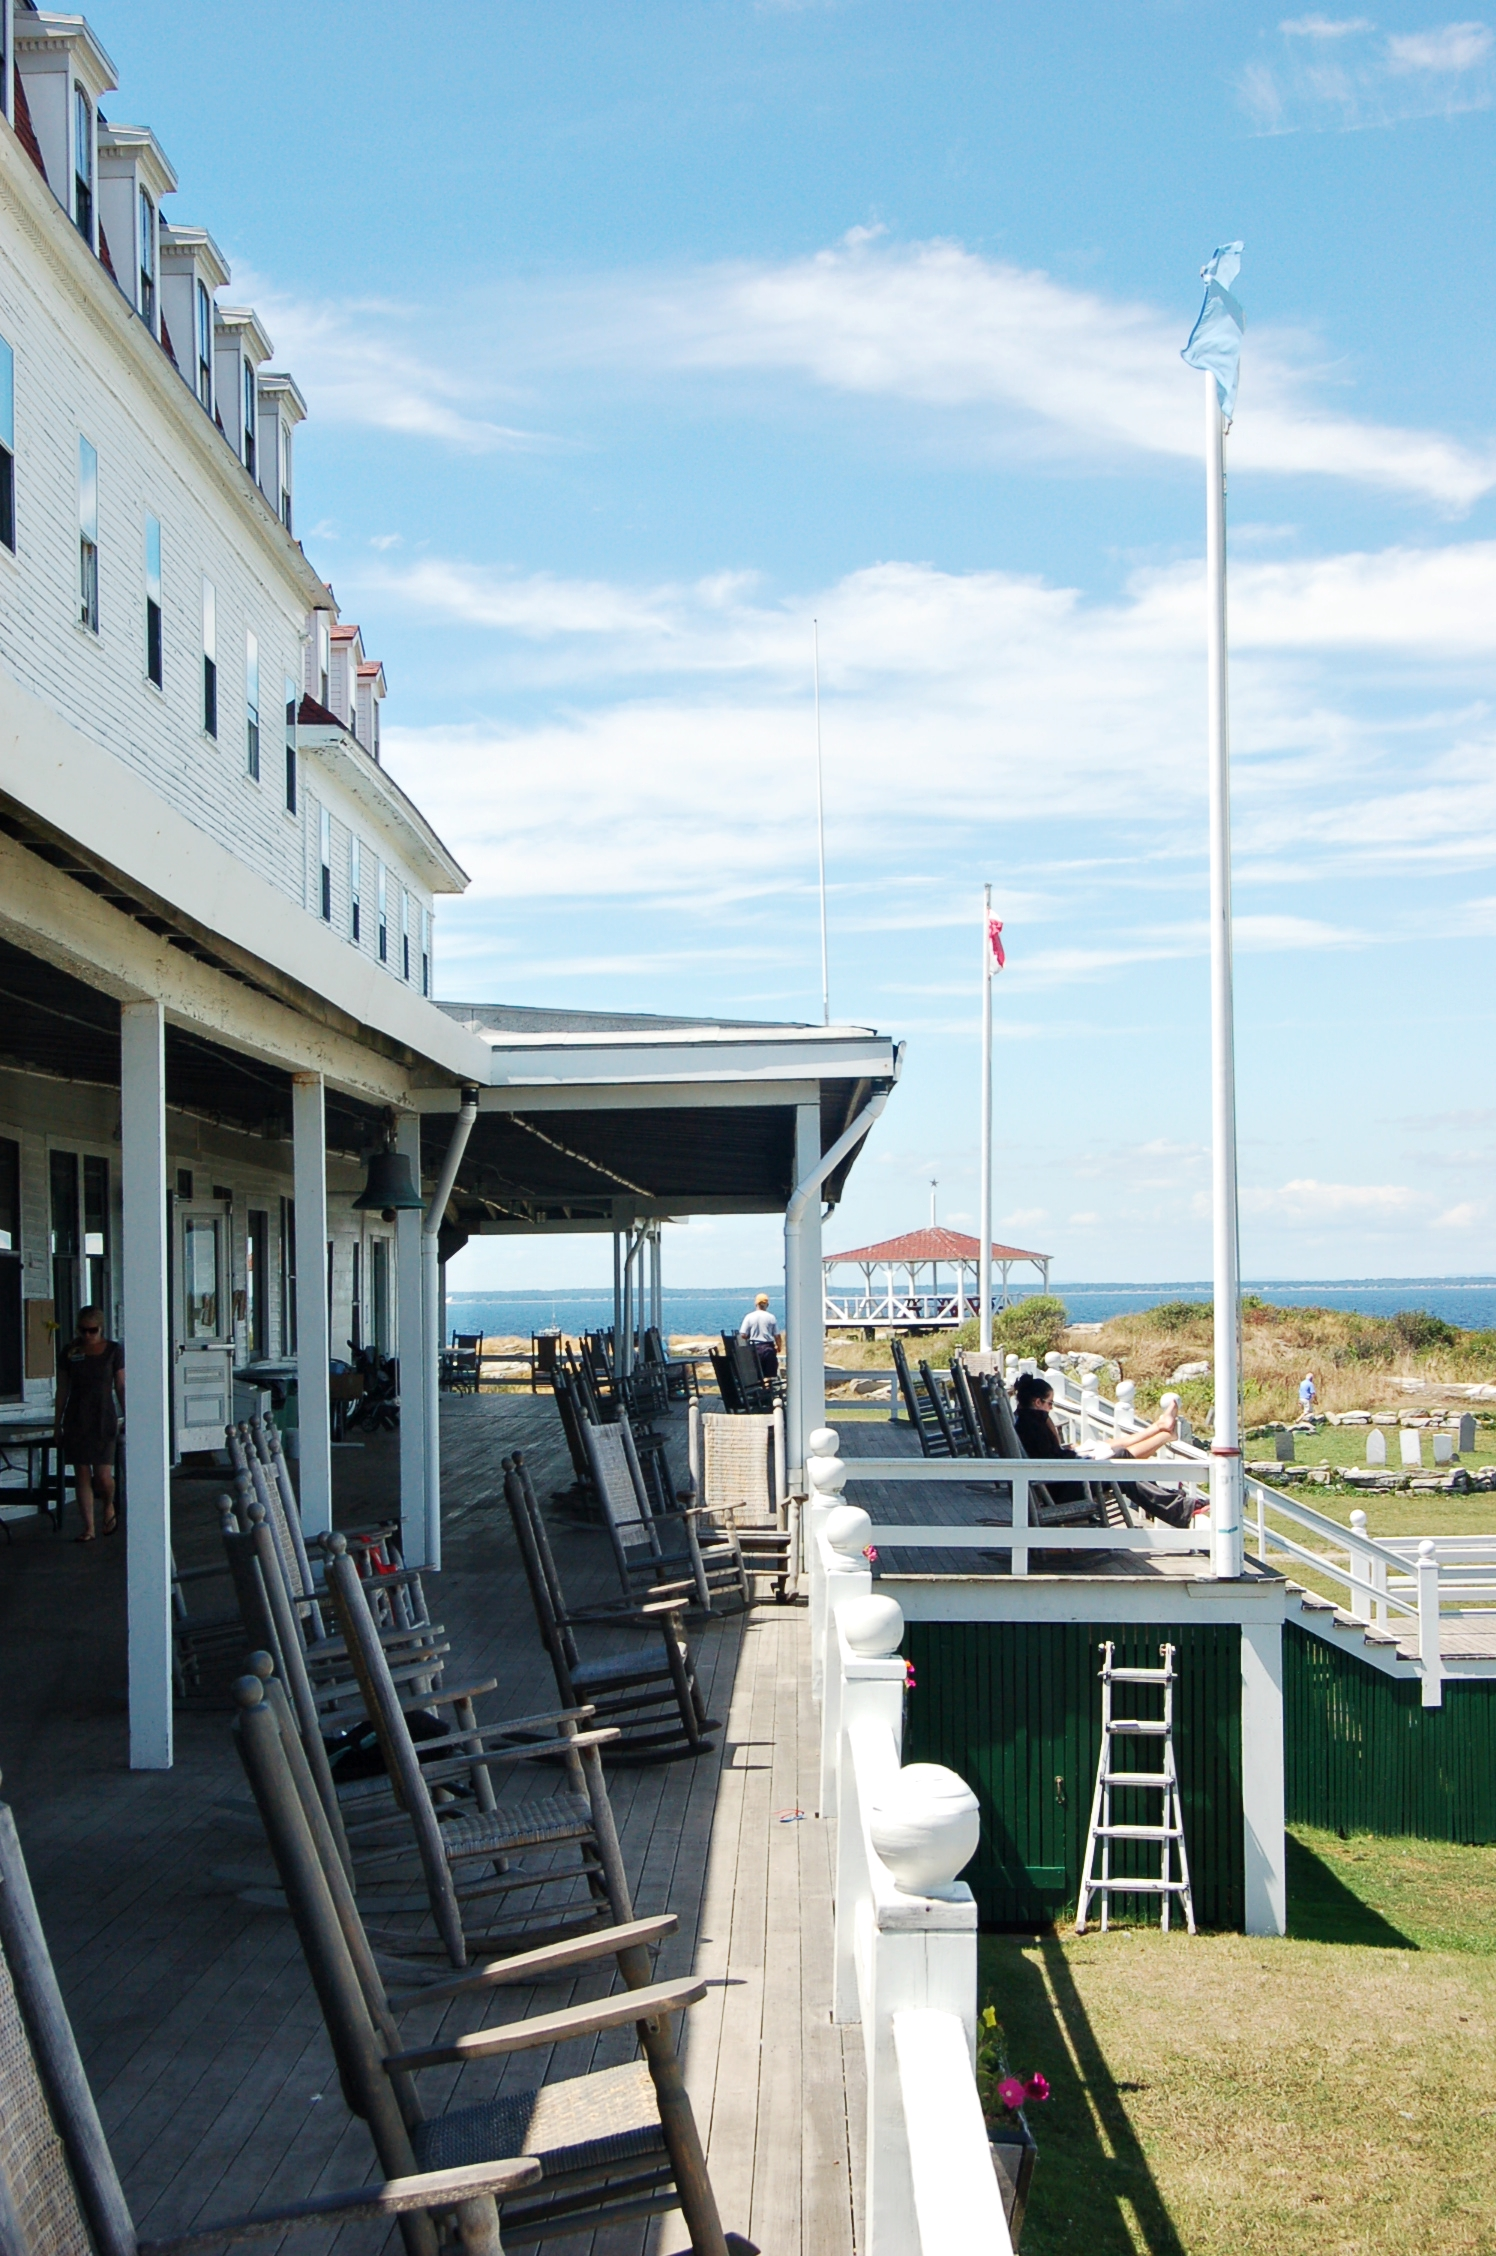 The Famous Oceanic Hotel Porch